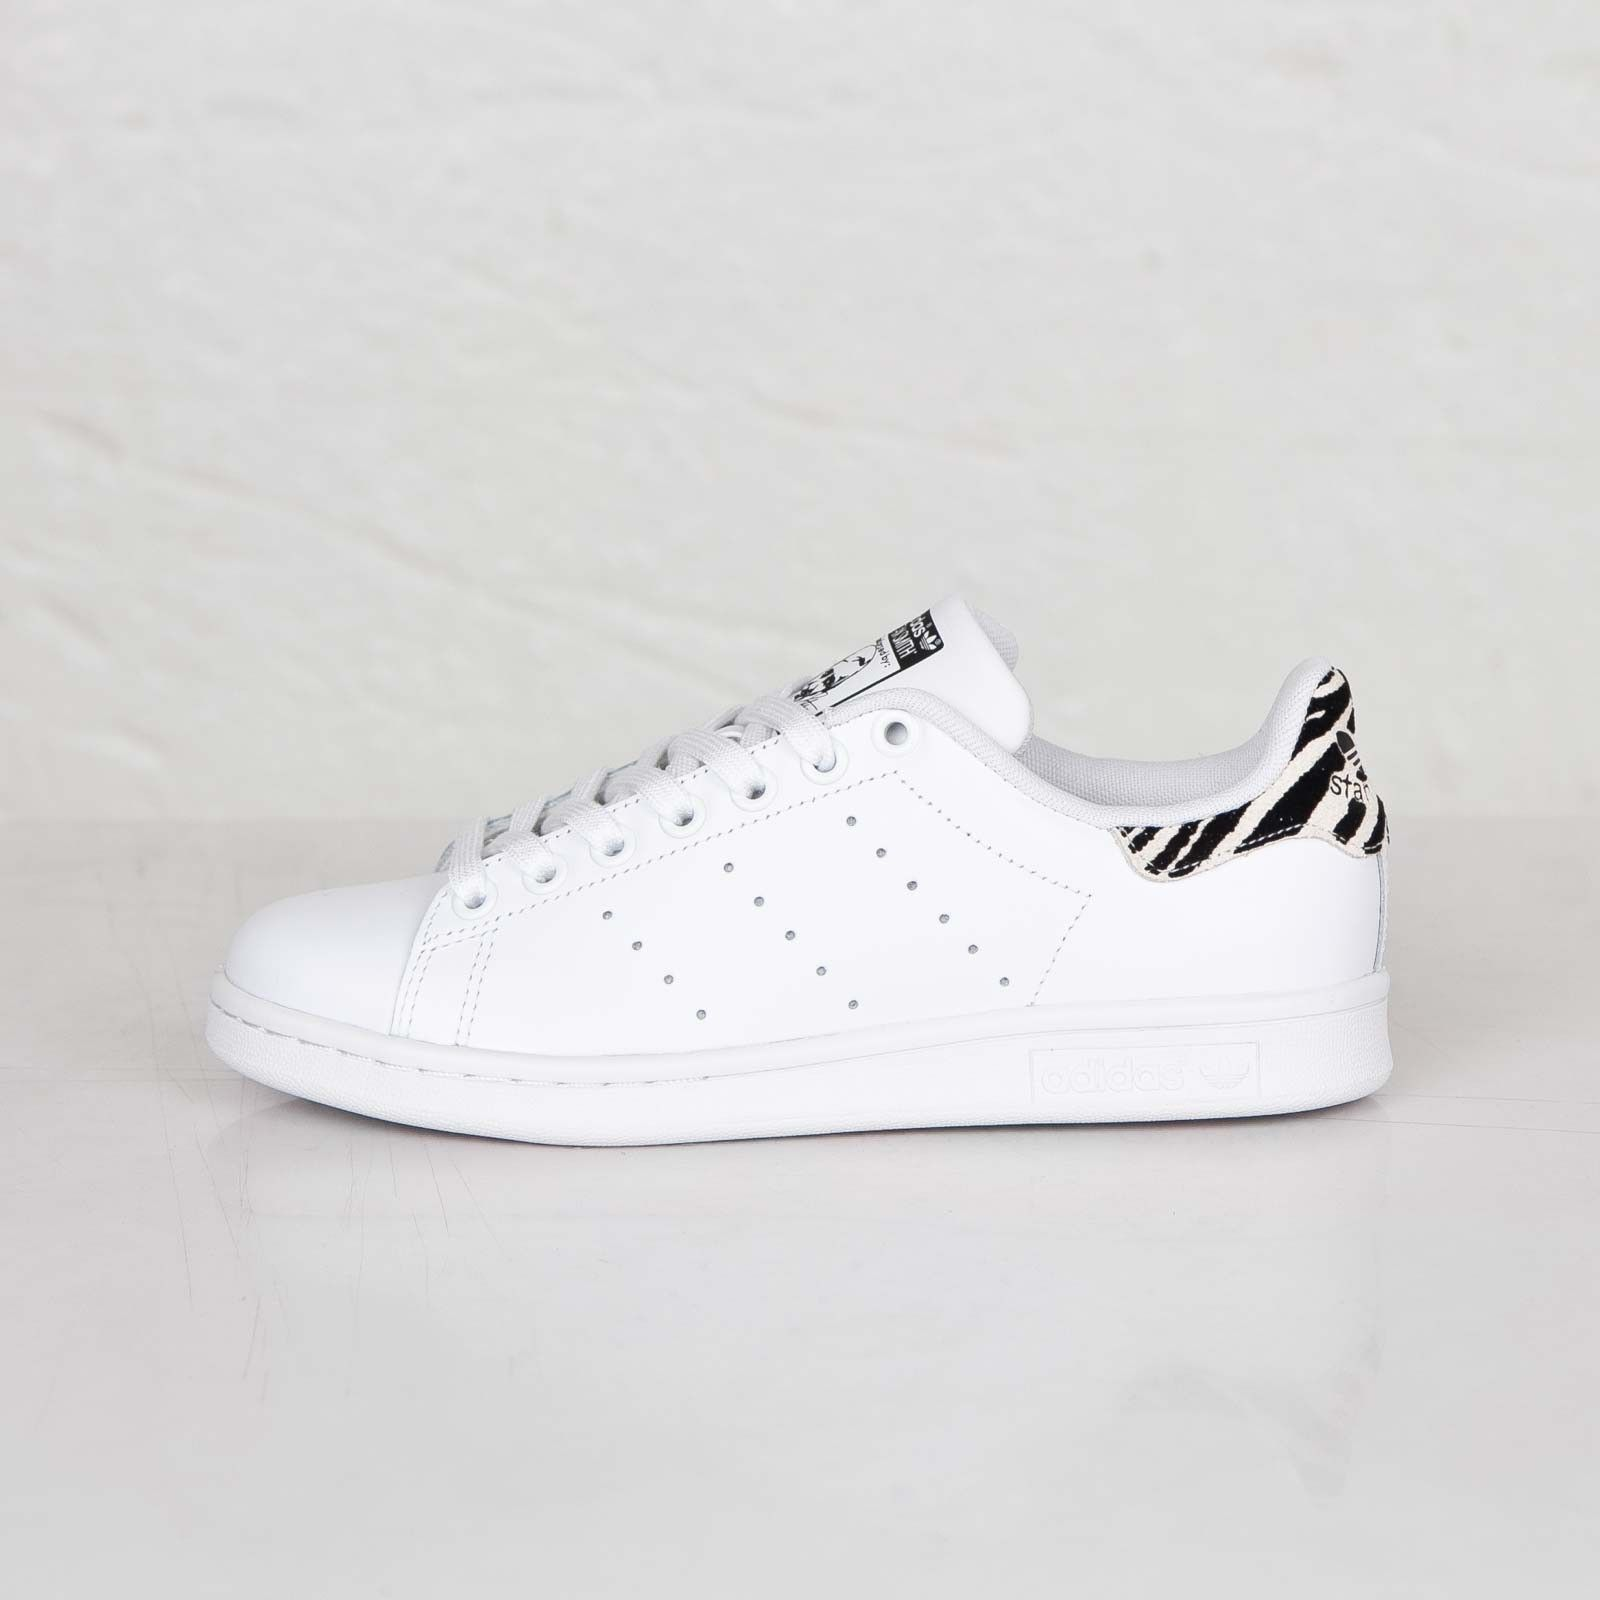 adidas stan smith blanche zebre